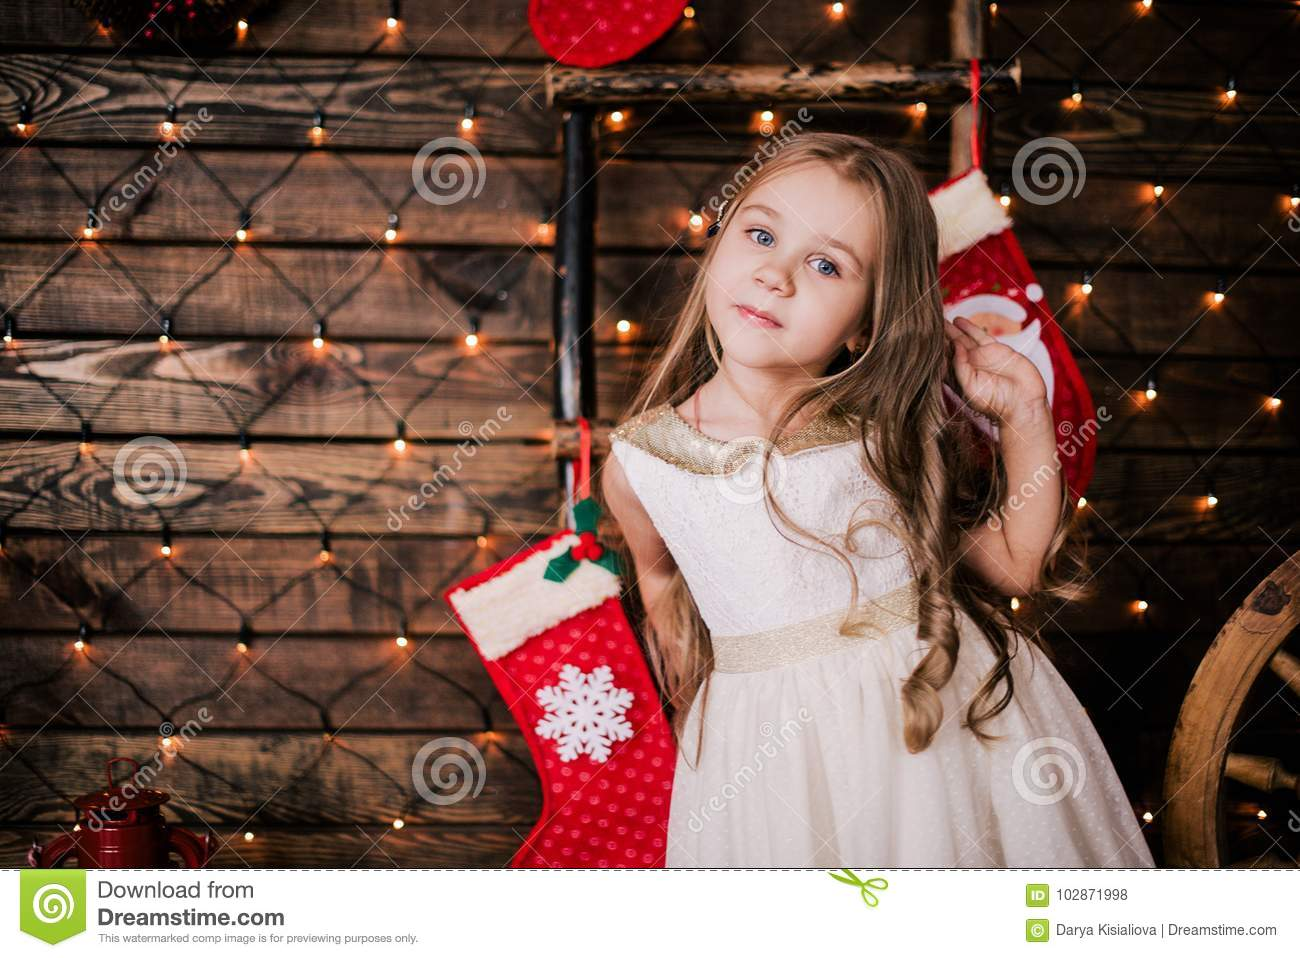 1d5ed8930 Baby Girl 4-5 Year Old Posing In Room Over Christmas Tree With ...